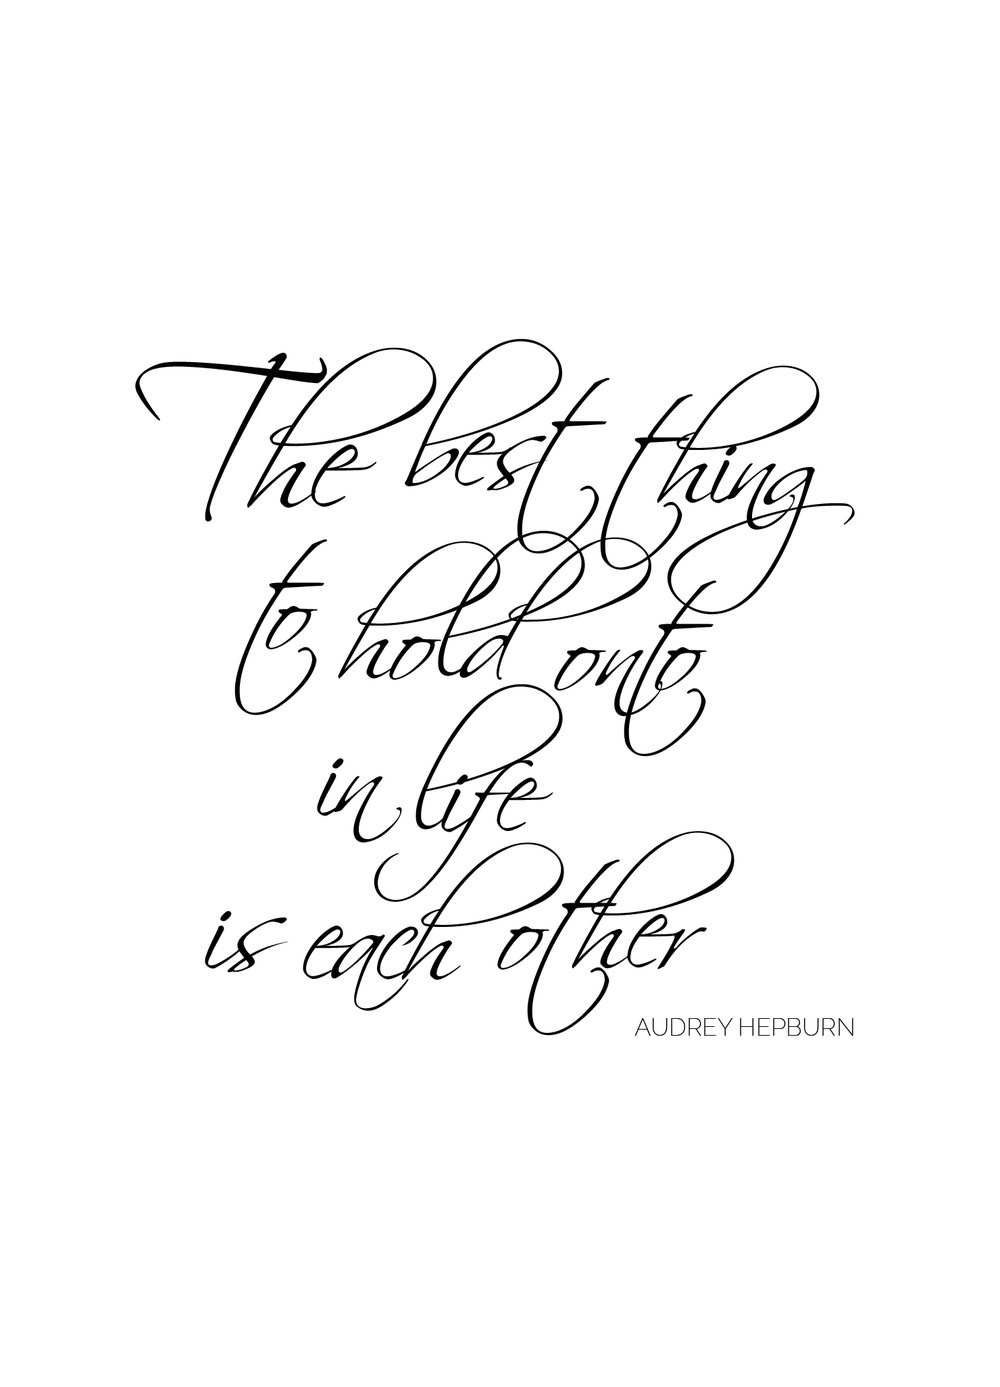 """With today being the day of love, we wanted to share one of our favourite love quotes.  """"The best thing to hold onto in life is each other…"""" - Audrey Hepburn  Happy Valentines Day lovers.  Some of our favourite love quotes are now available on  Etsy  as easy-peasy digital downloads for your home or special event..."""